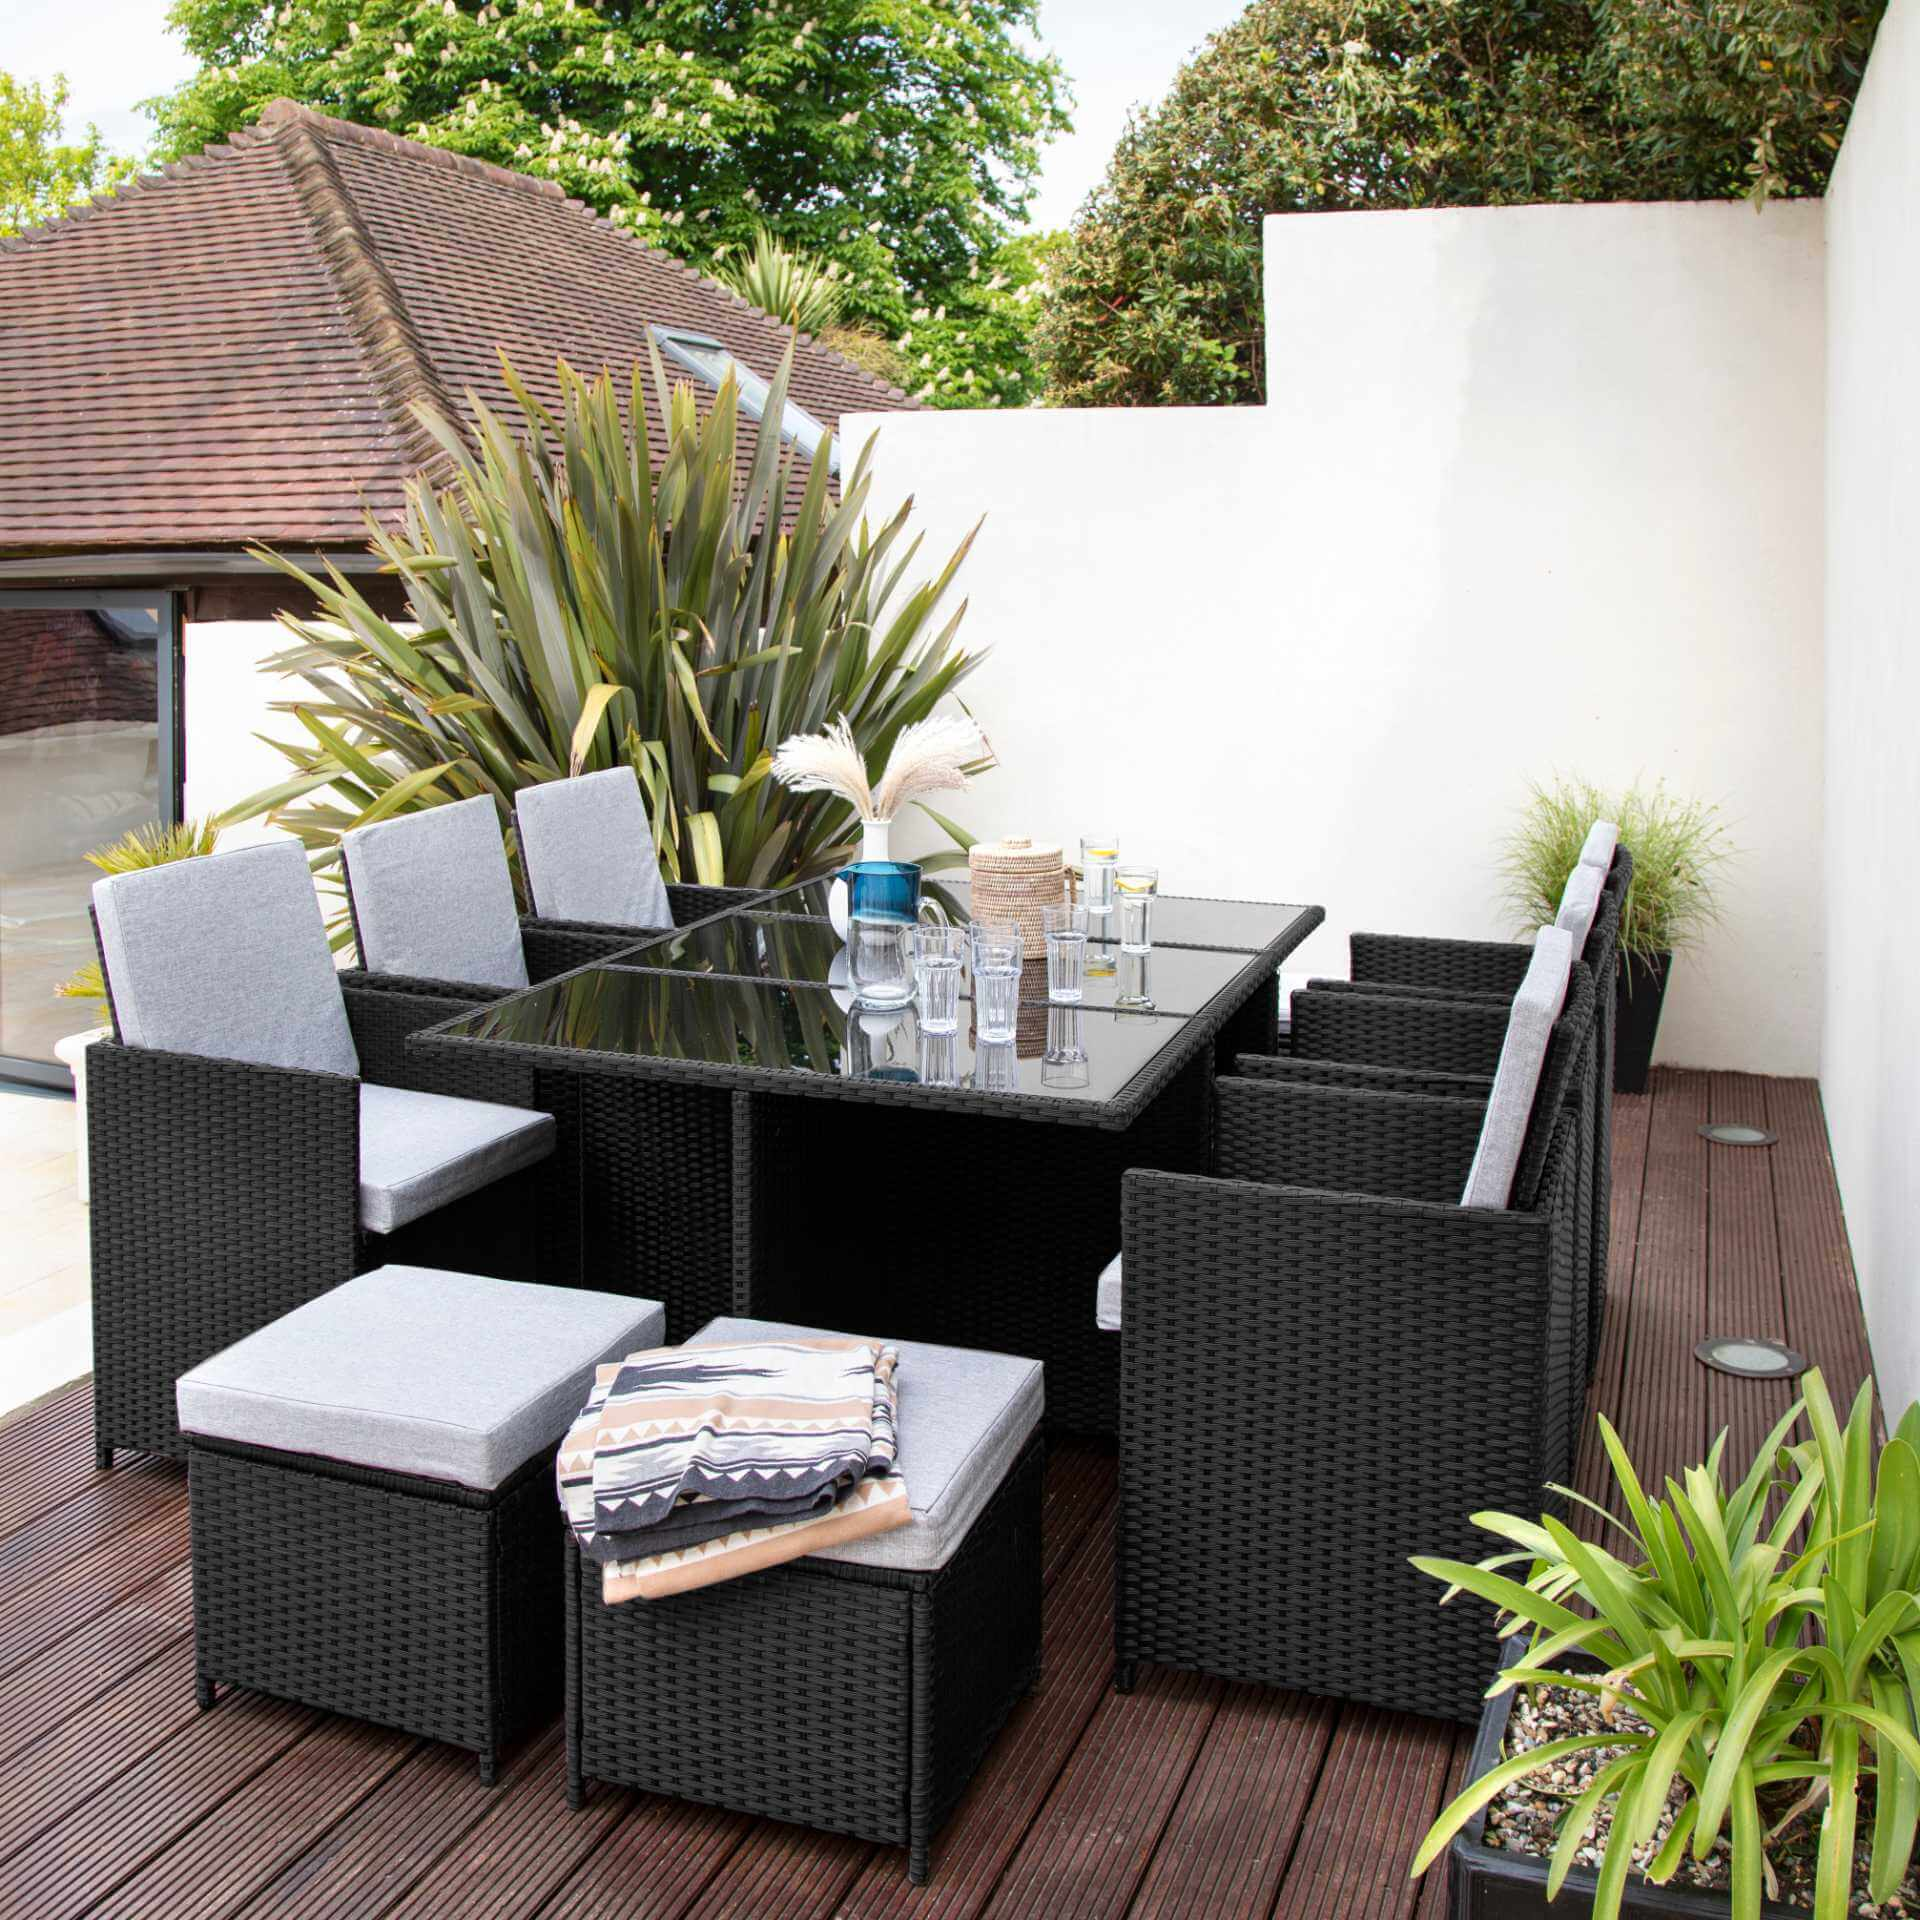 10 Seater Rattan Cube Outdoor Dining Set - Black Weave - Laura James